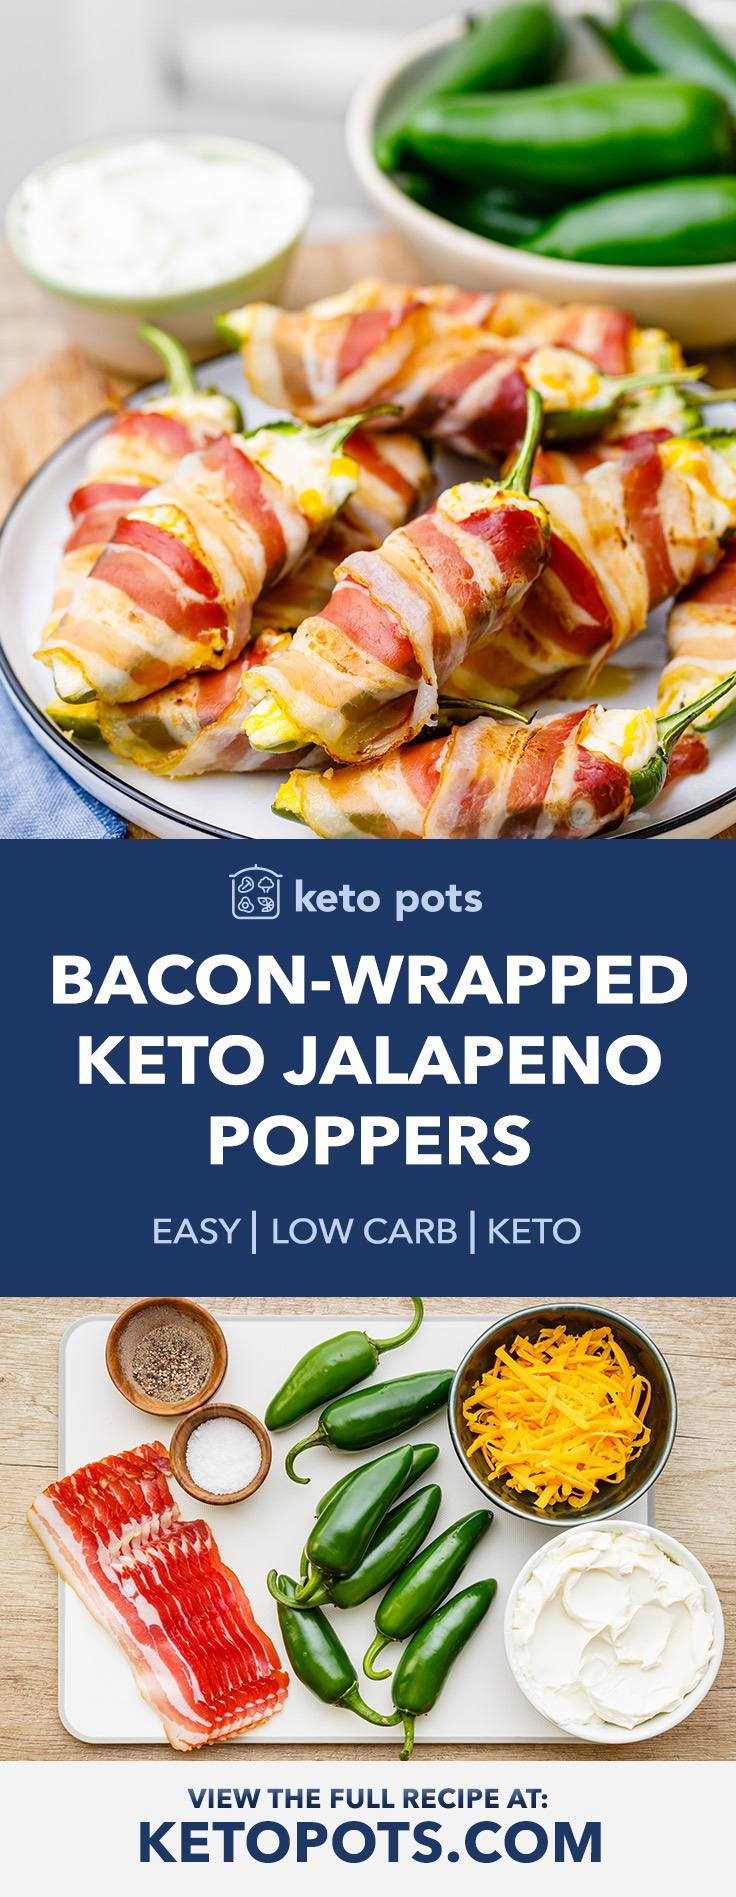 Bacon Wrapped Keto Jalapeno Poppers